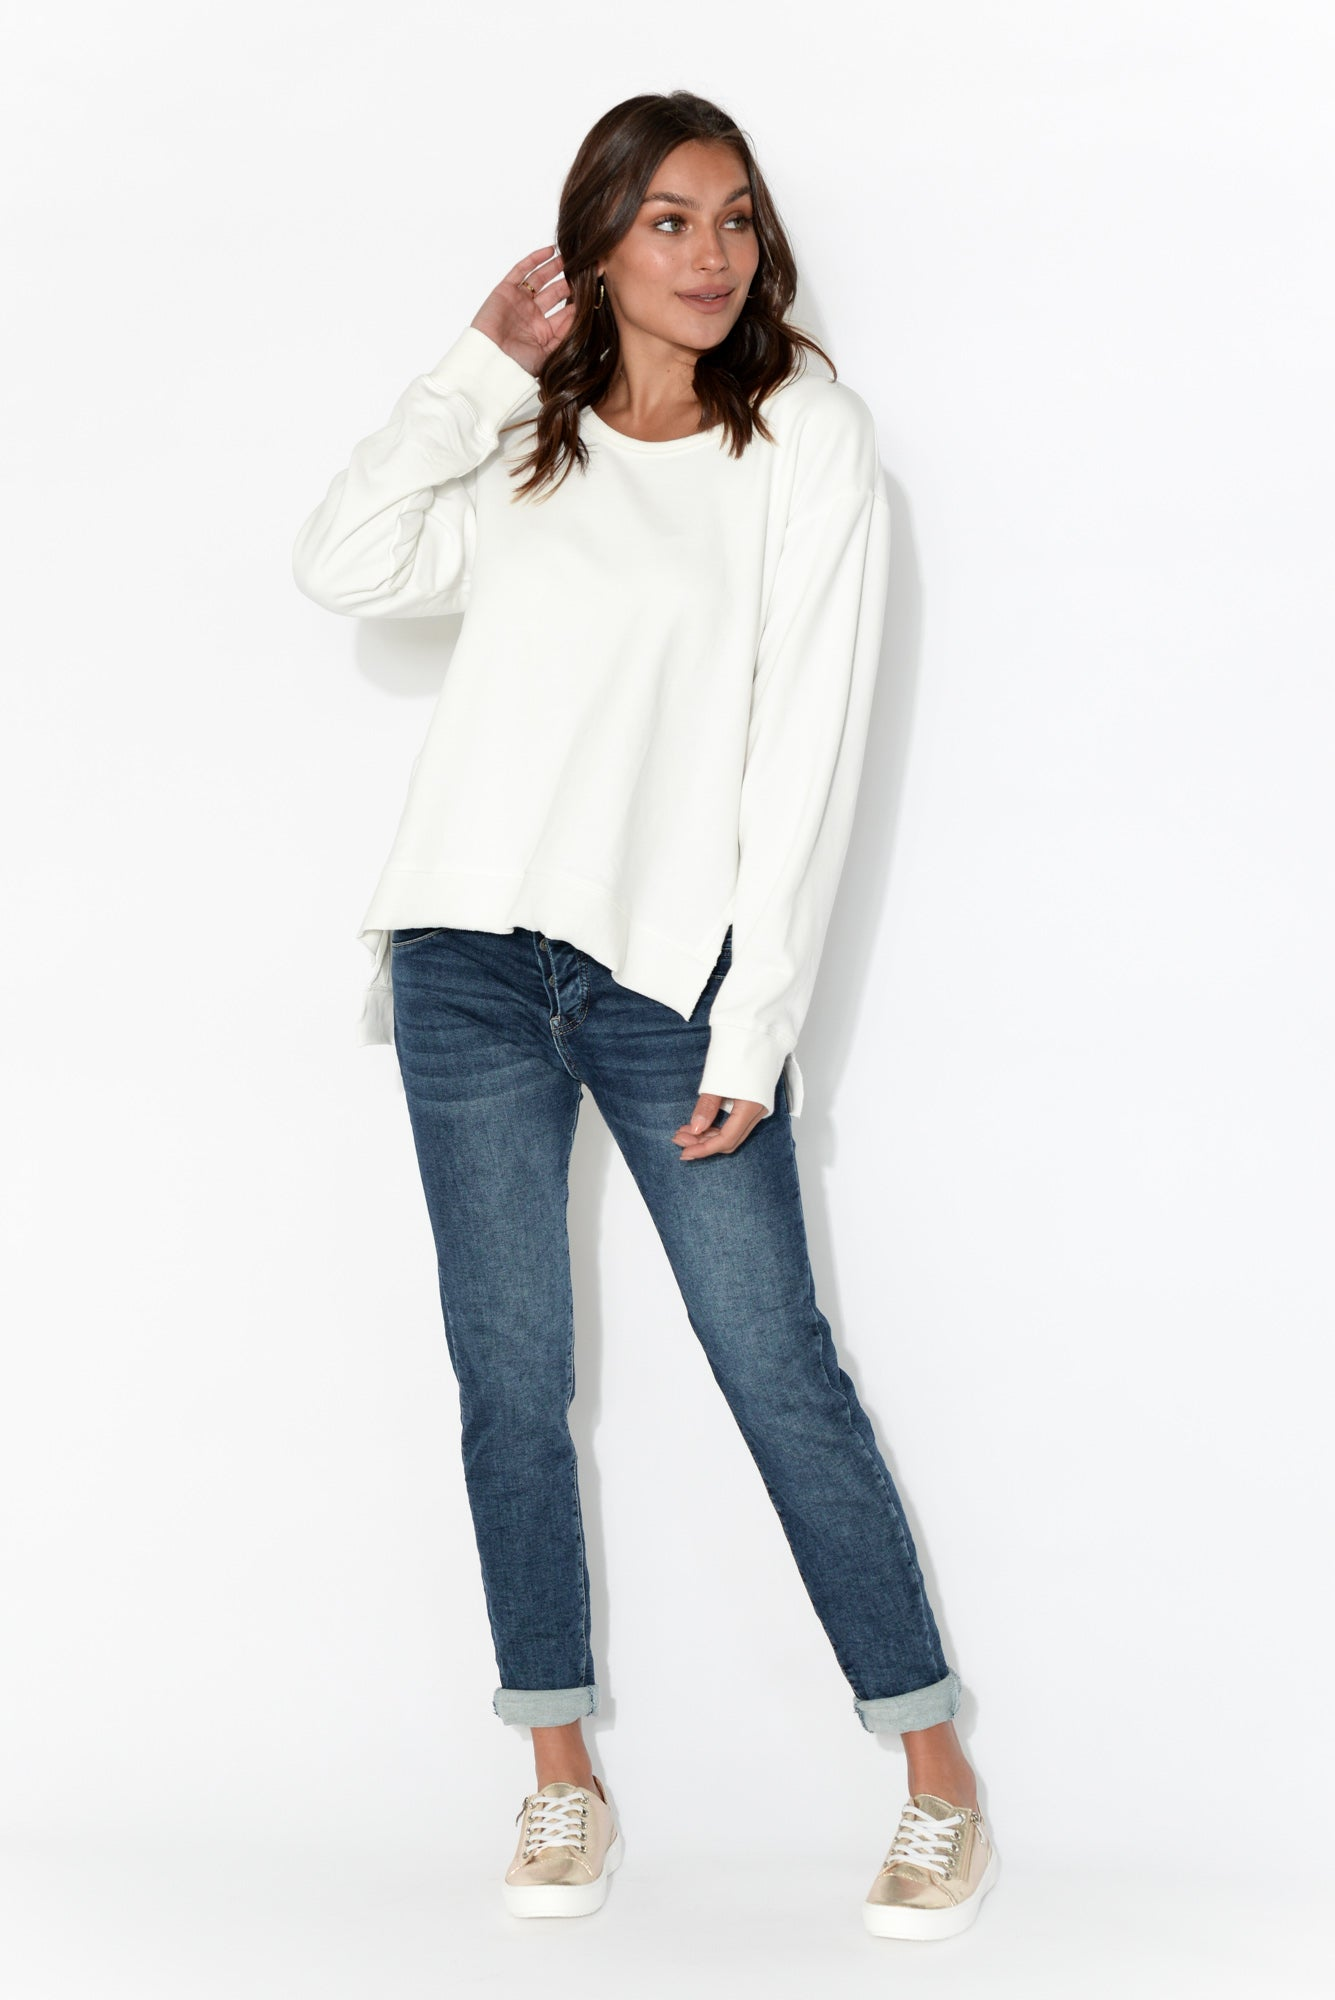 Ulverstone White Cotton Jumper